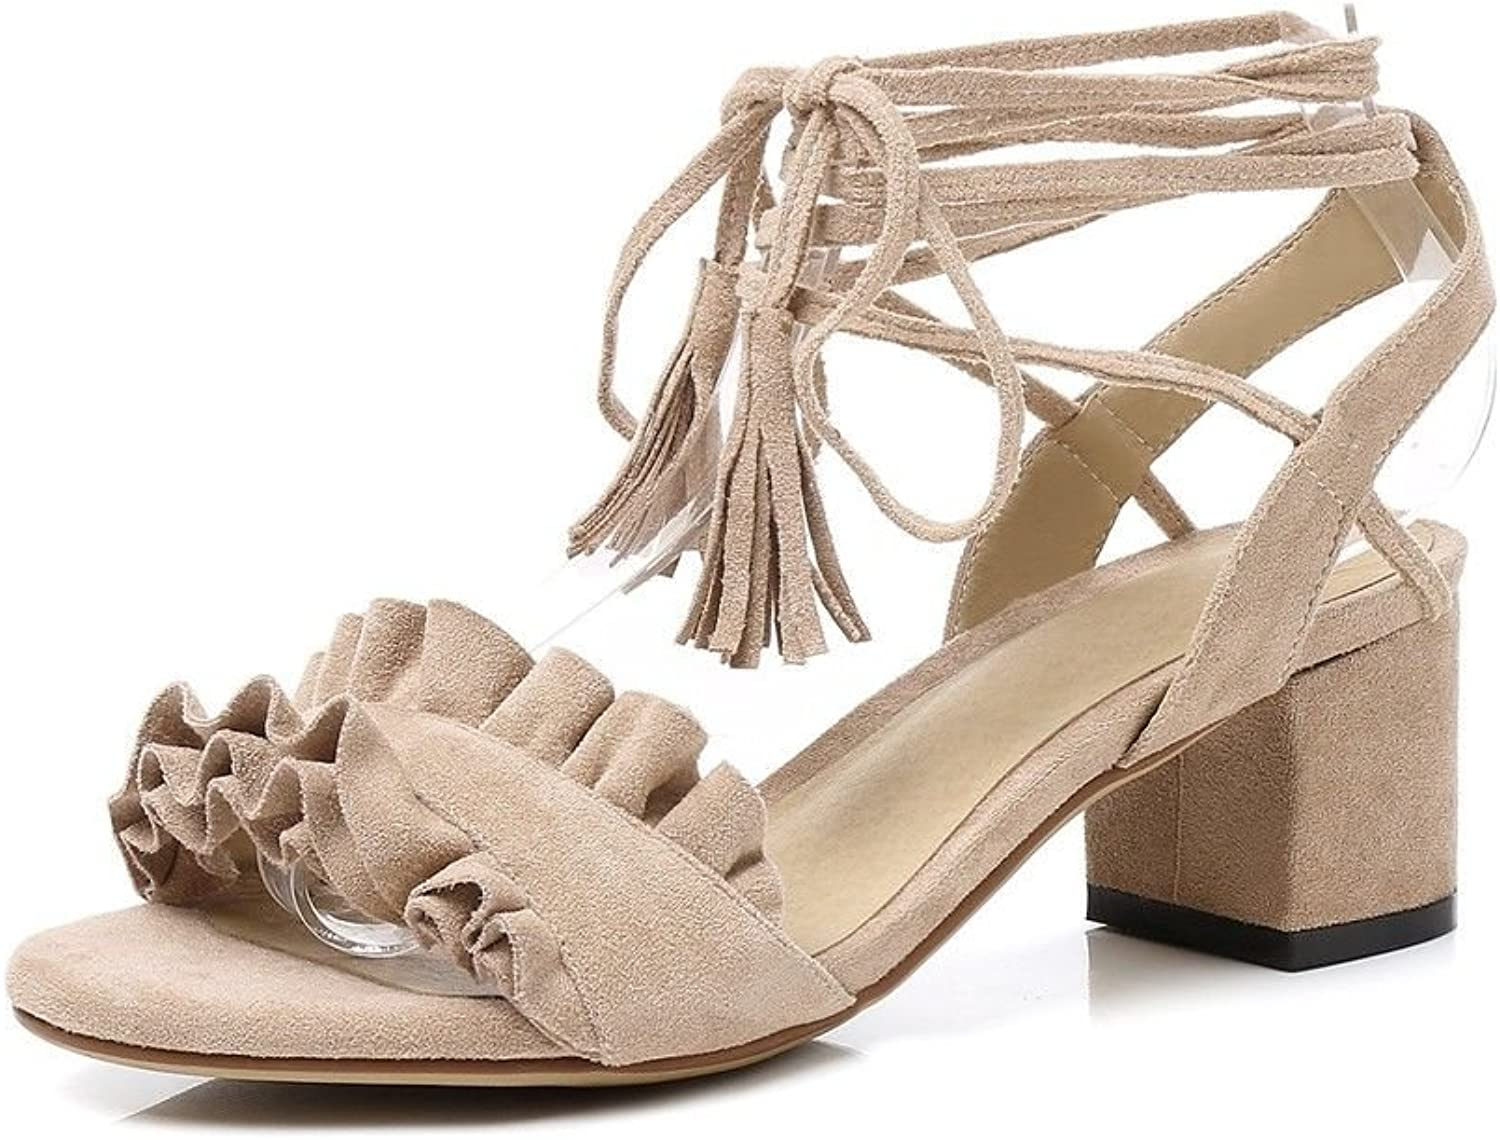 Ms. Summer high-Heeled Ankle Strap-Su-Root-Toe College Wind Round Head Sandals